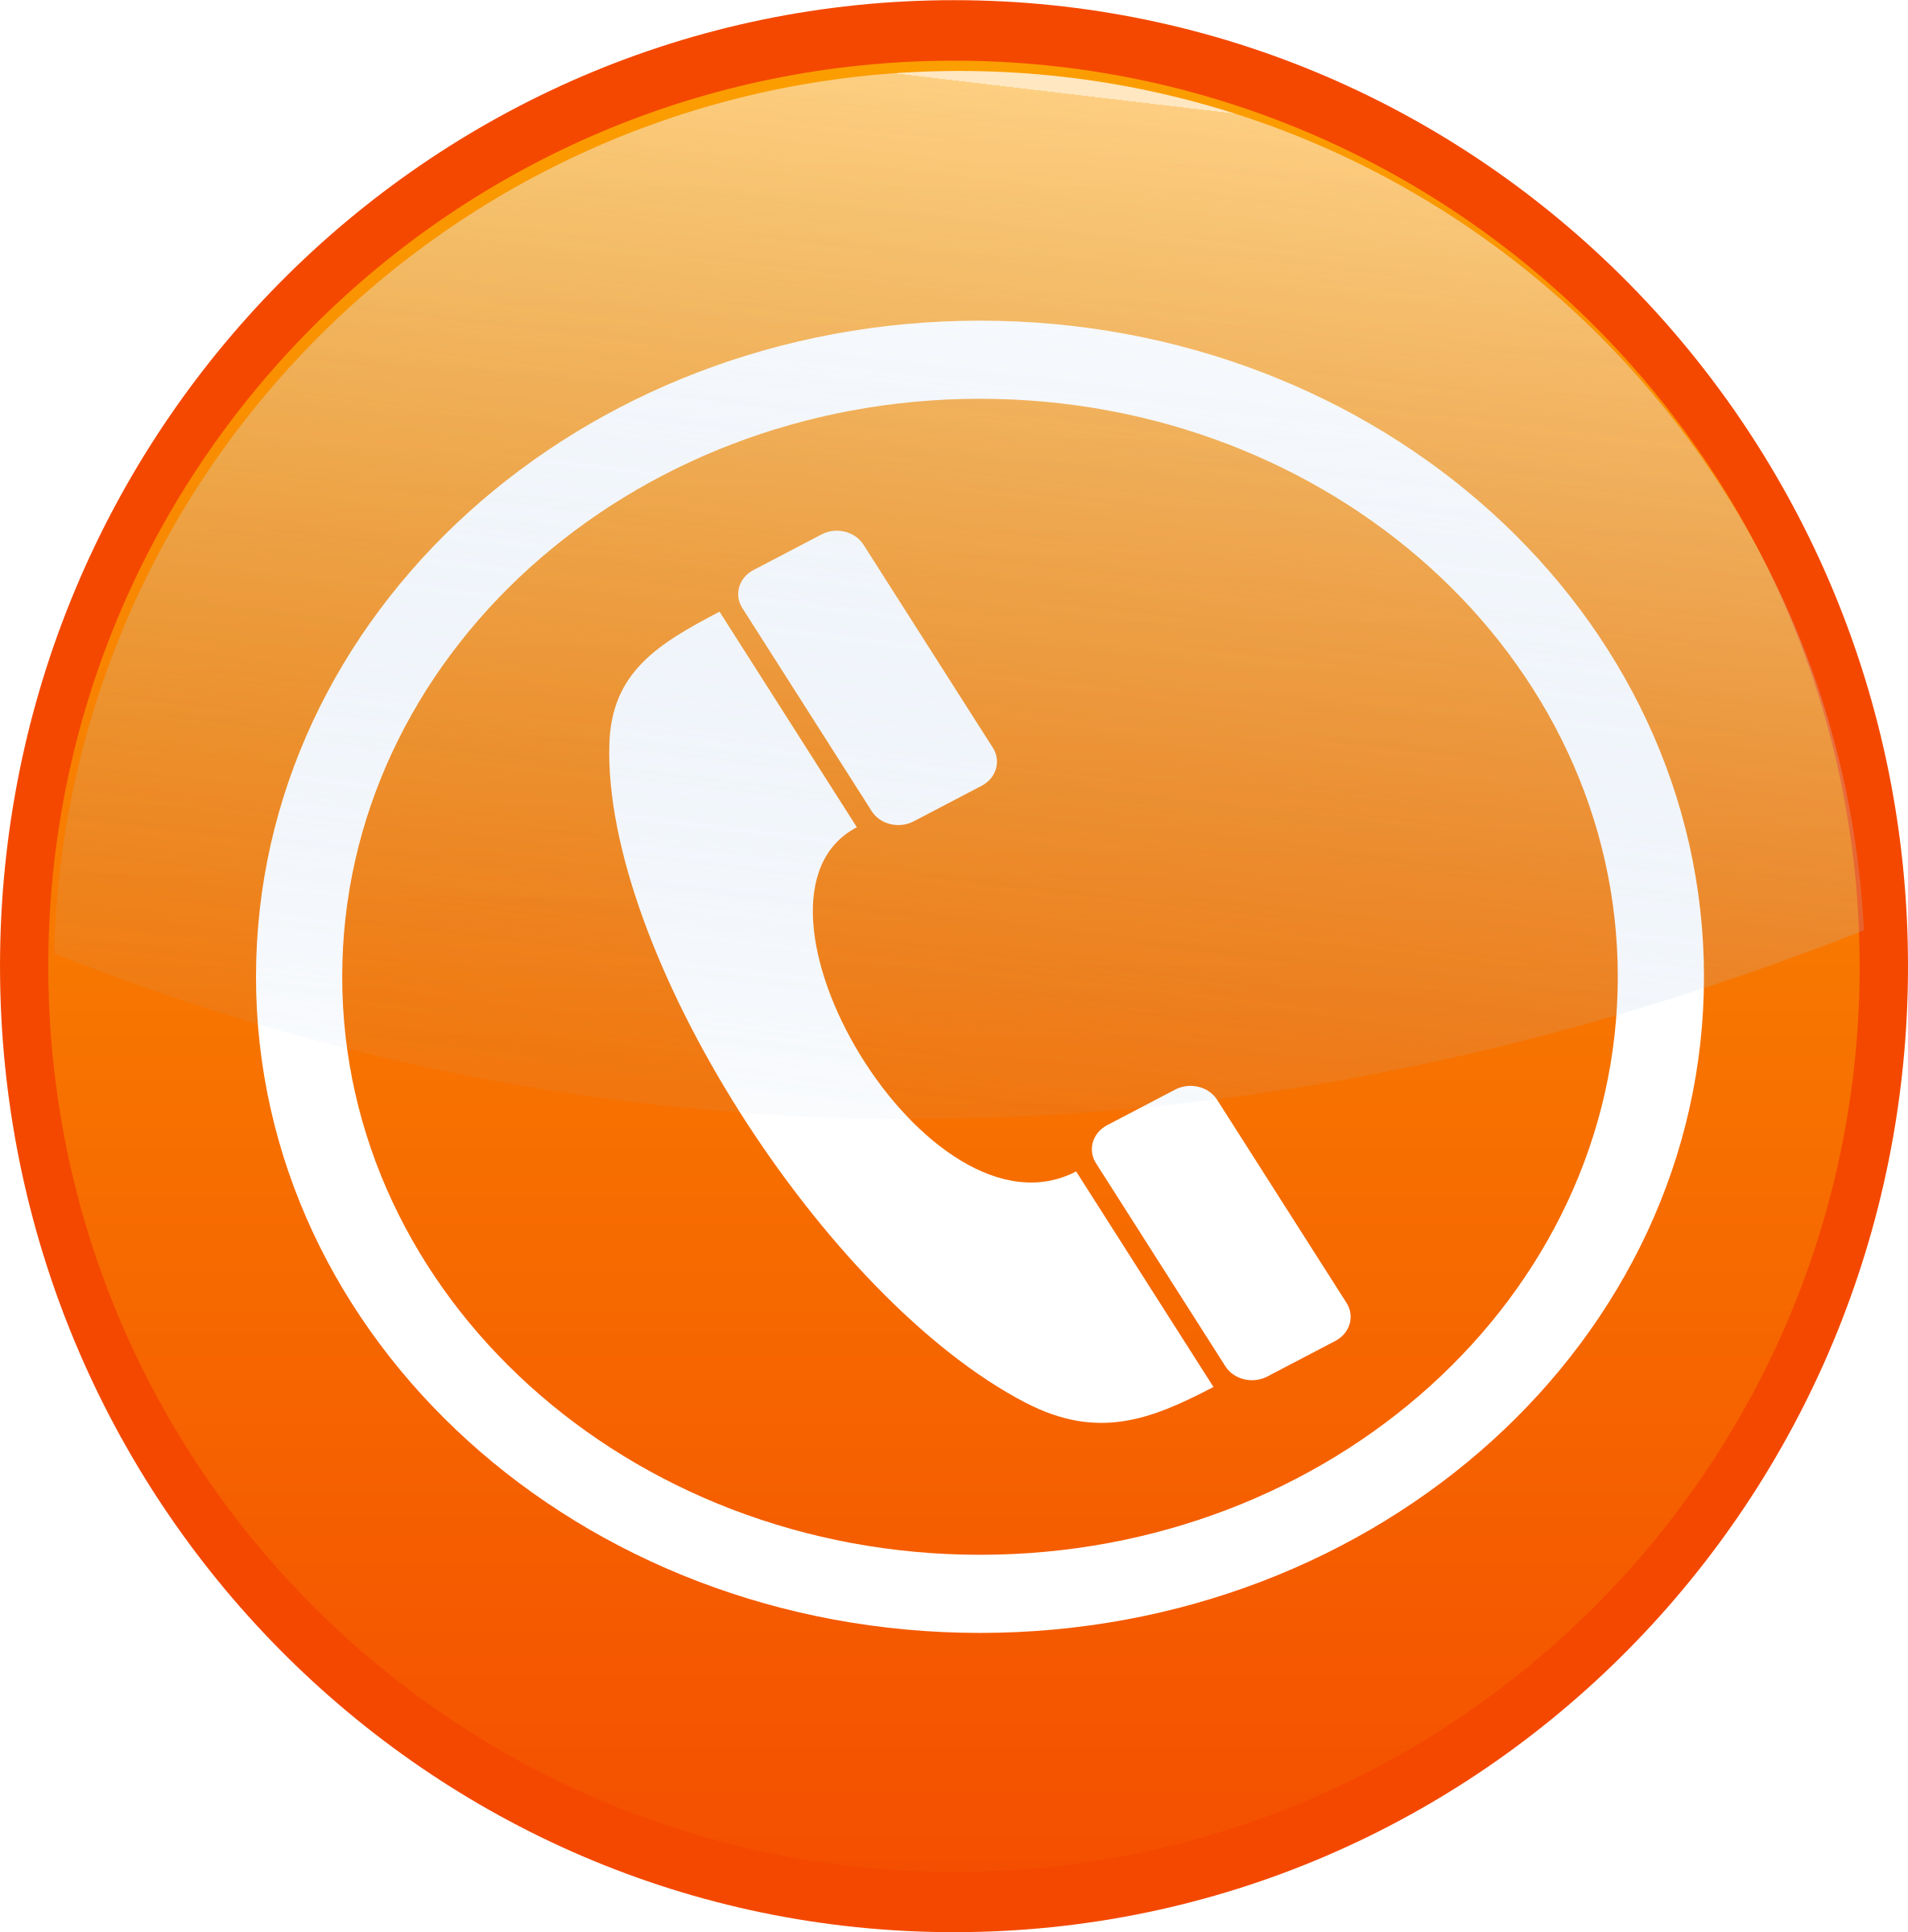 Phone clipart mobile calling. Iphone telephone computer icons